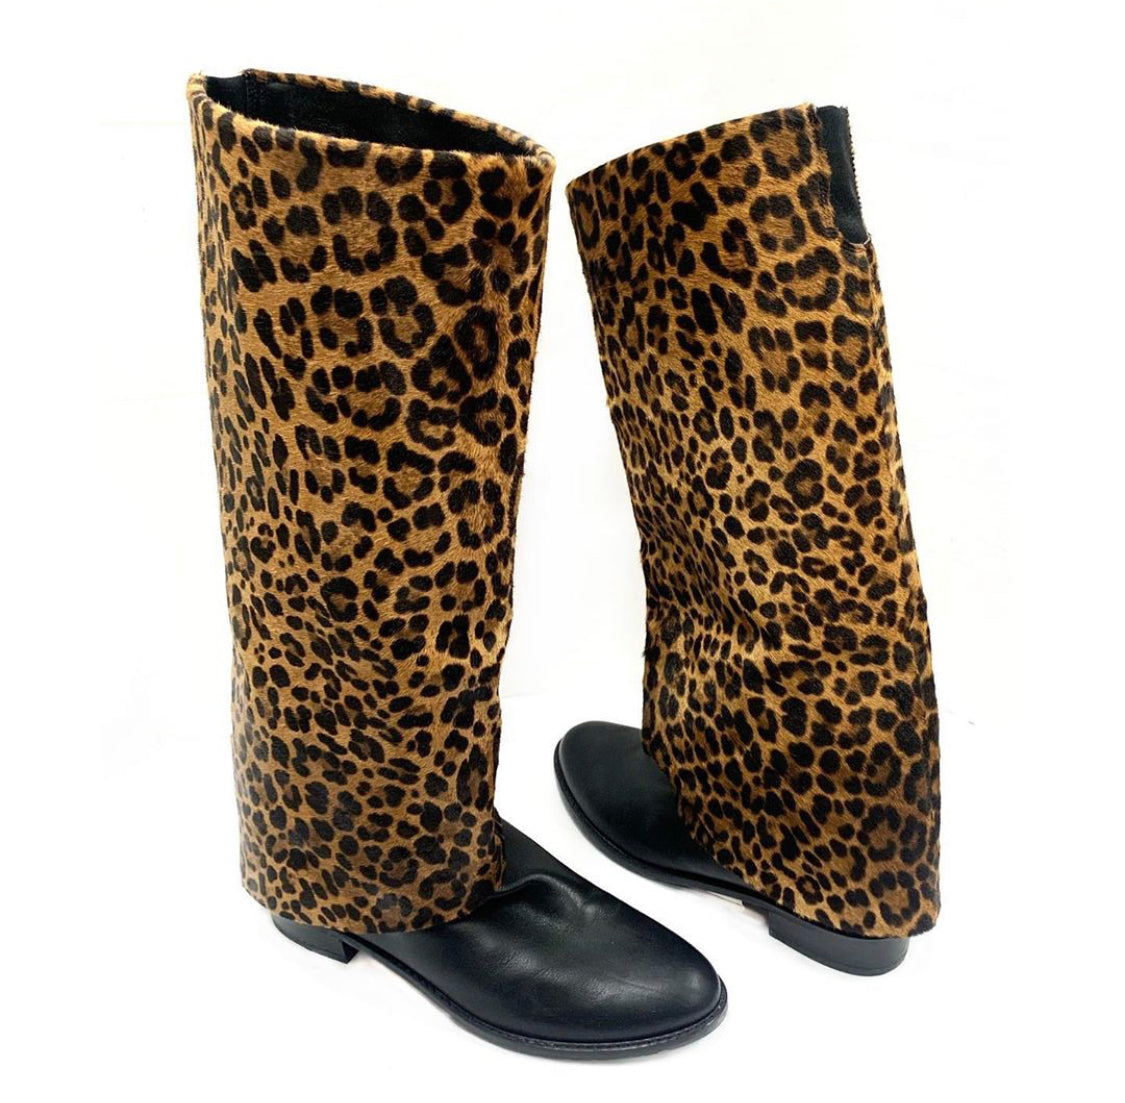 Primary Photo - BRAND: STUART WEITZMAN<BR>STYLE: BOOTS DESIGNER<BR>COLOR: ANIMAL PRINT<BR>SIZE: 7.5<BR>SKU: 196-14511-39568